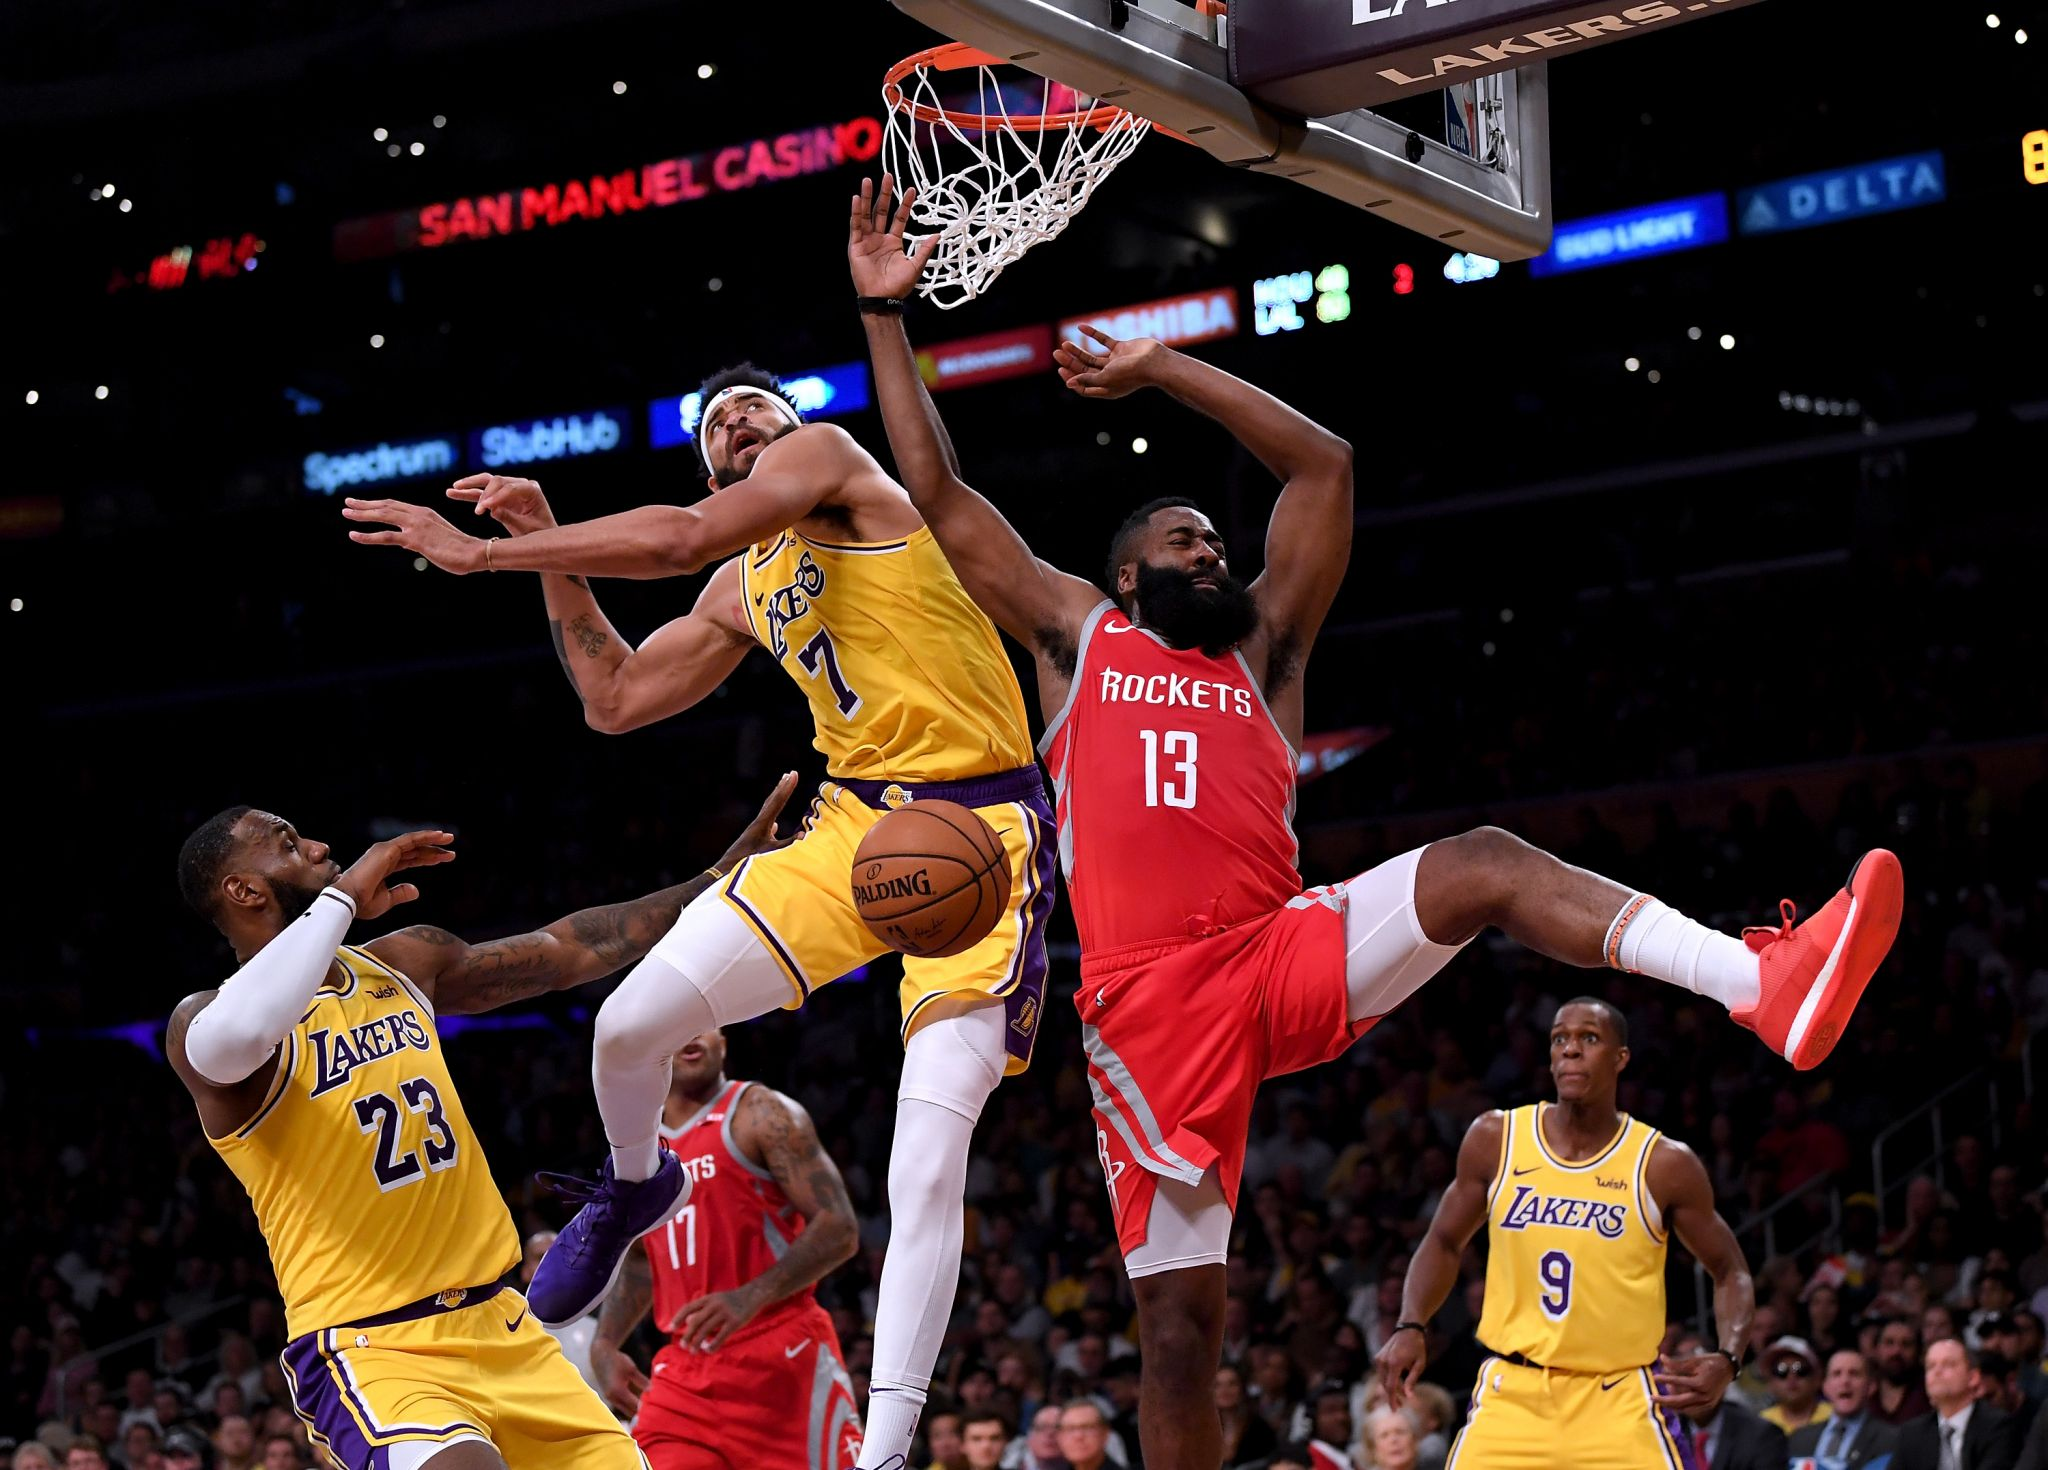 Scouting report: Rockets vs. Lakers - Houston Chronicle